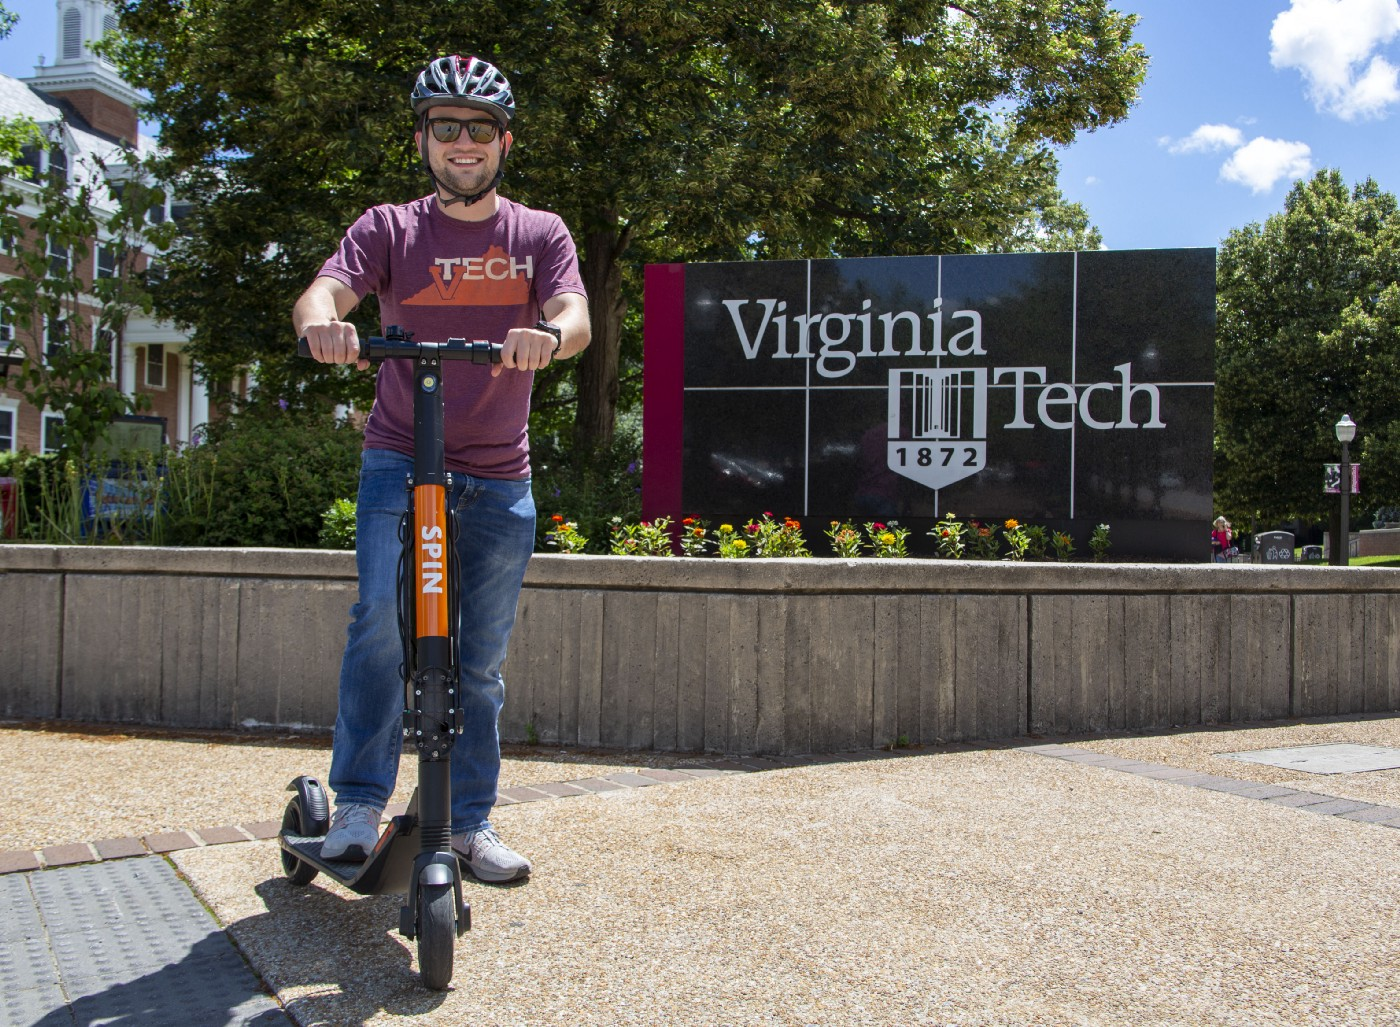 Man on Spin scooter in front of Virginia Tech